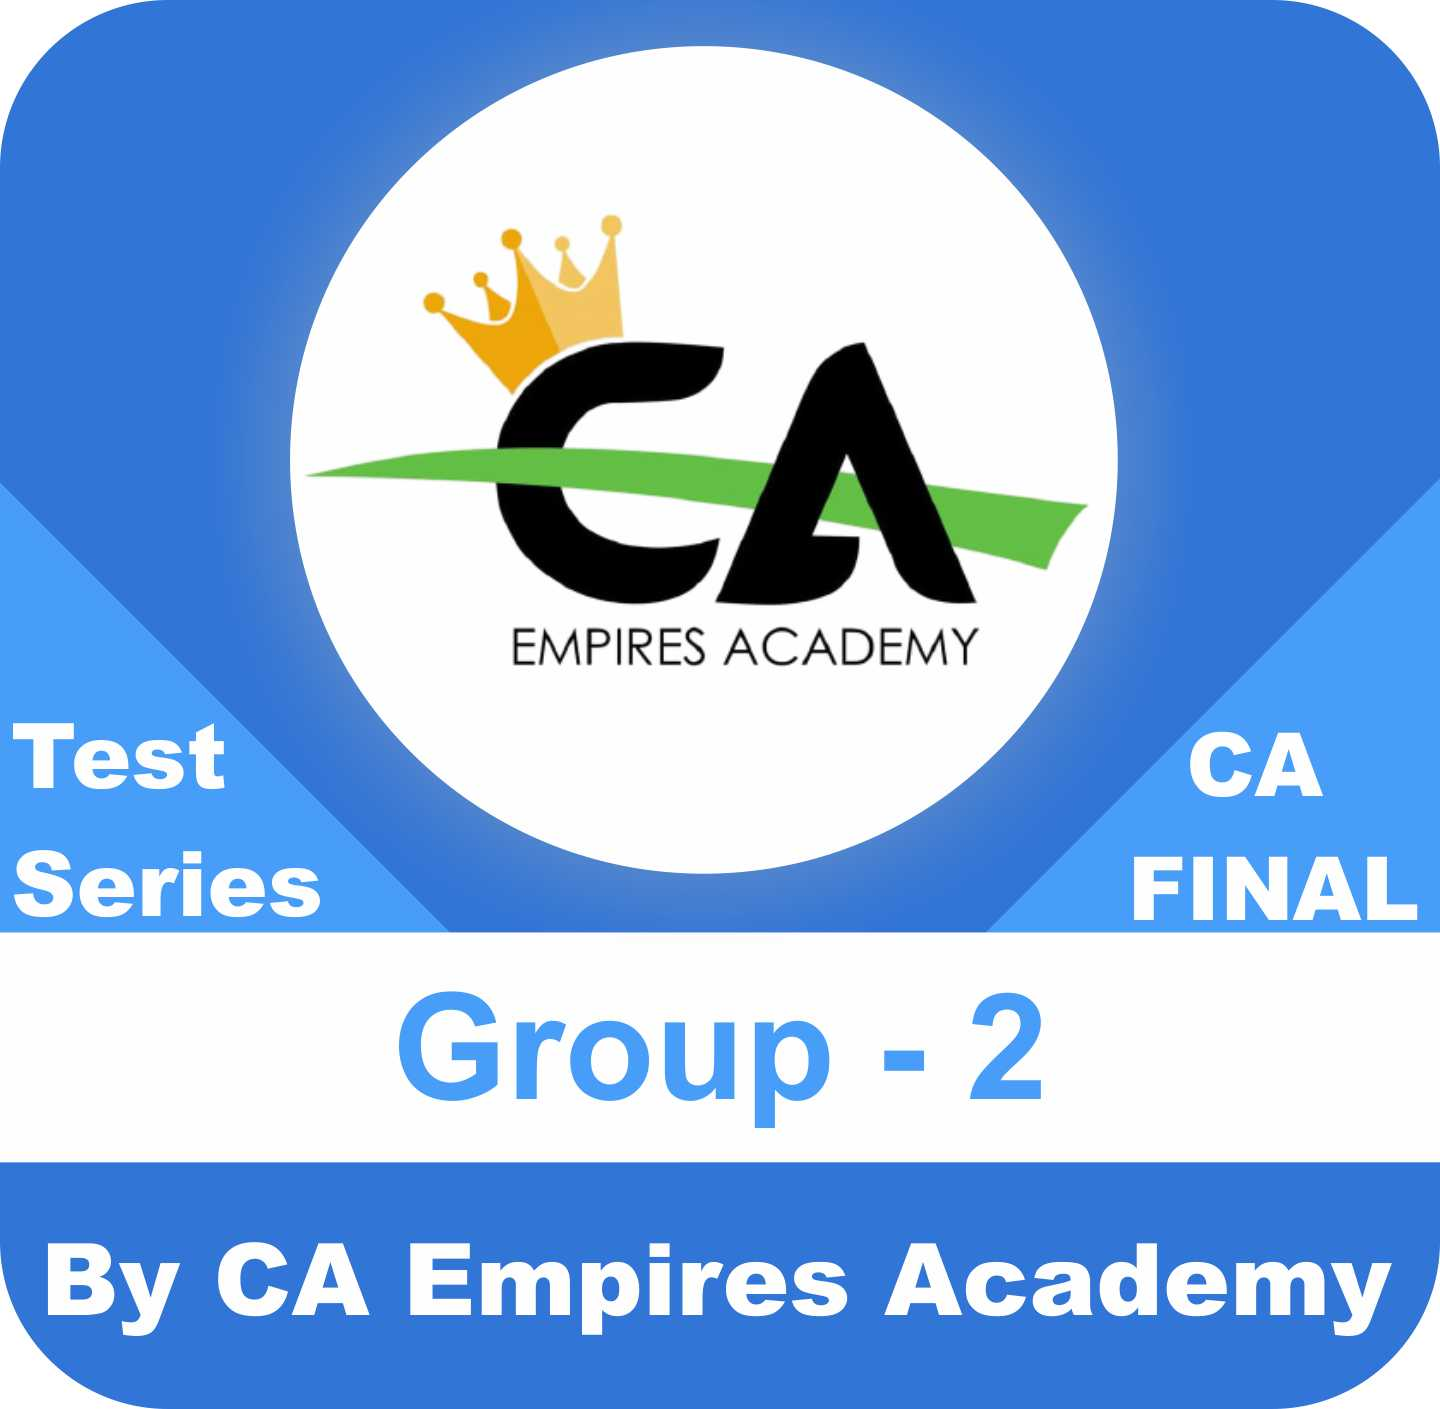 CA Final Group Two Test Series in Gold Plan by CA Empires Academy